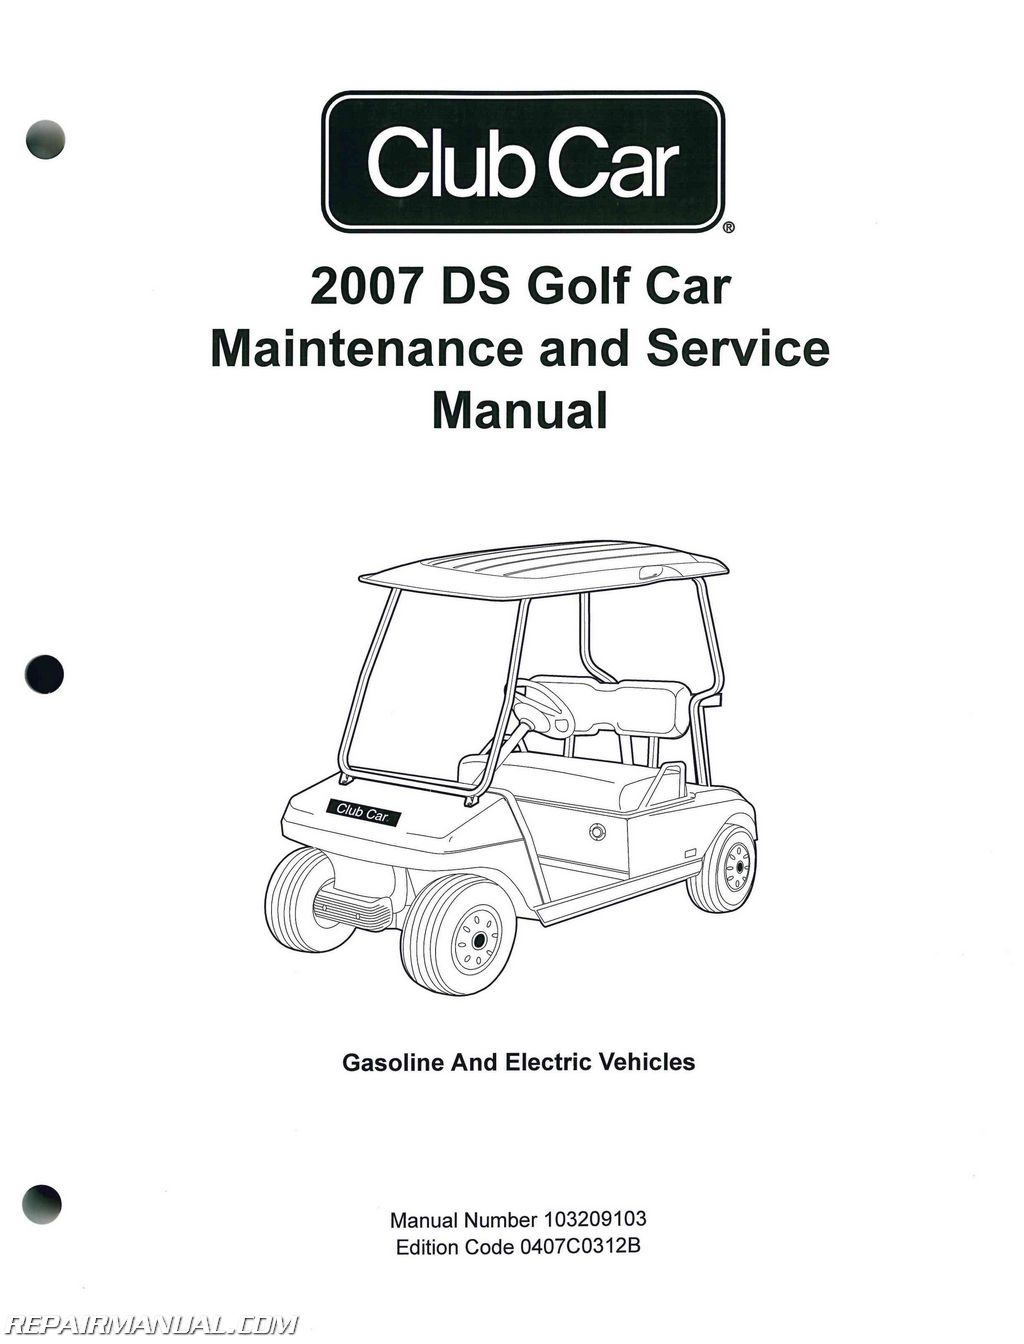 2007 Club Car DS Golf Car Gas And Electric Golf Cart Service Manual gas club car wiring diagrams readingrat net gas club car ignition switch wiring diagram at pacquiaovsvargaslive.co